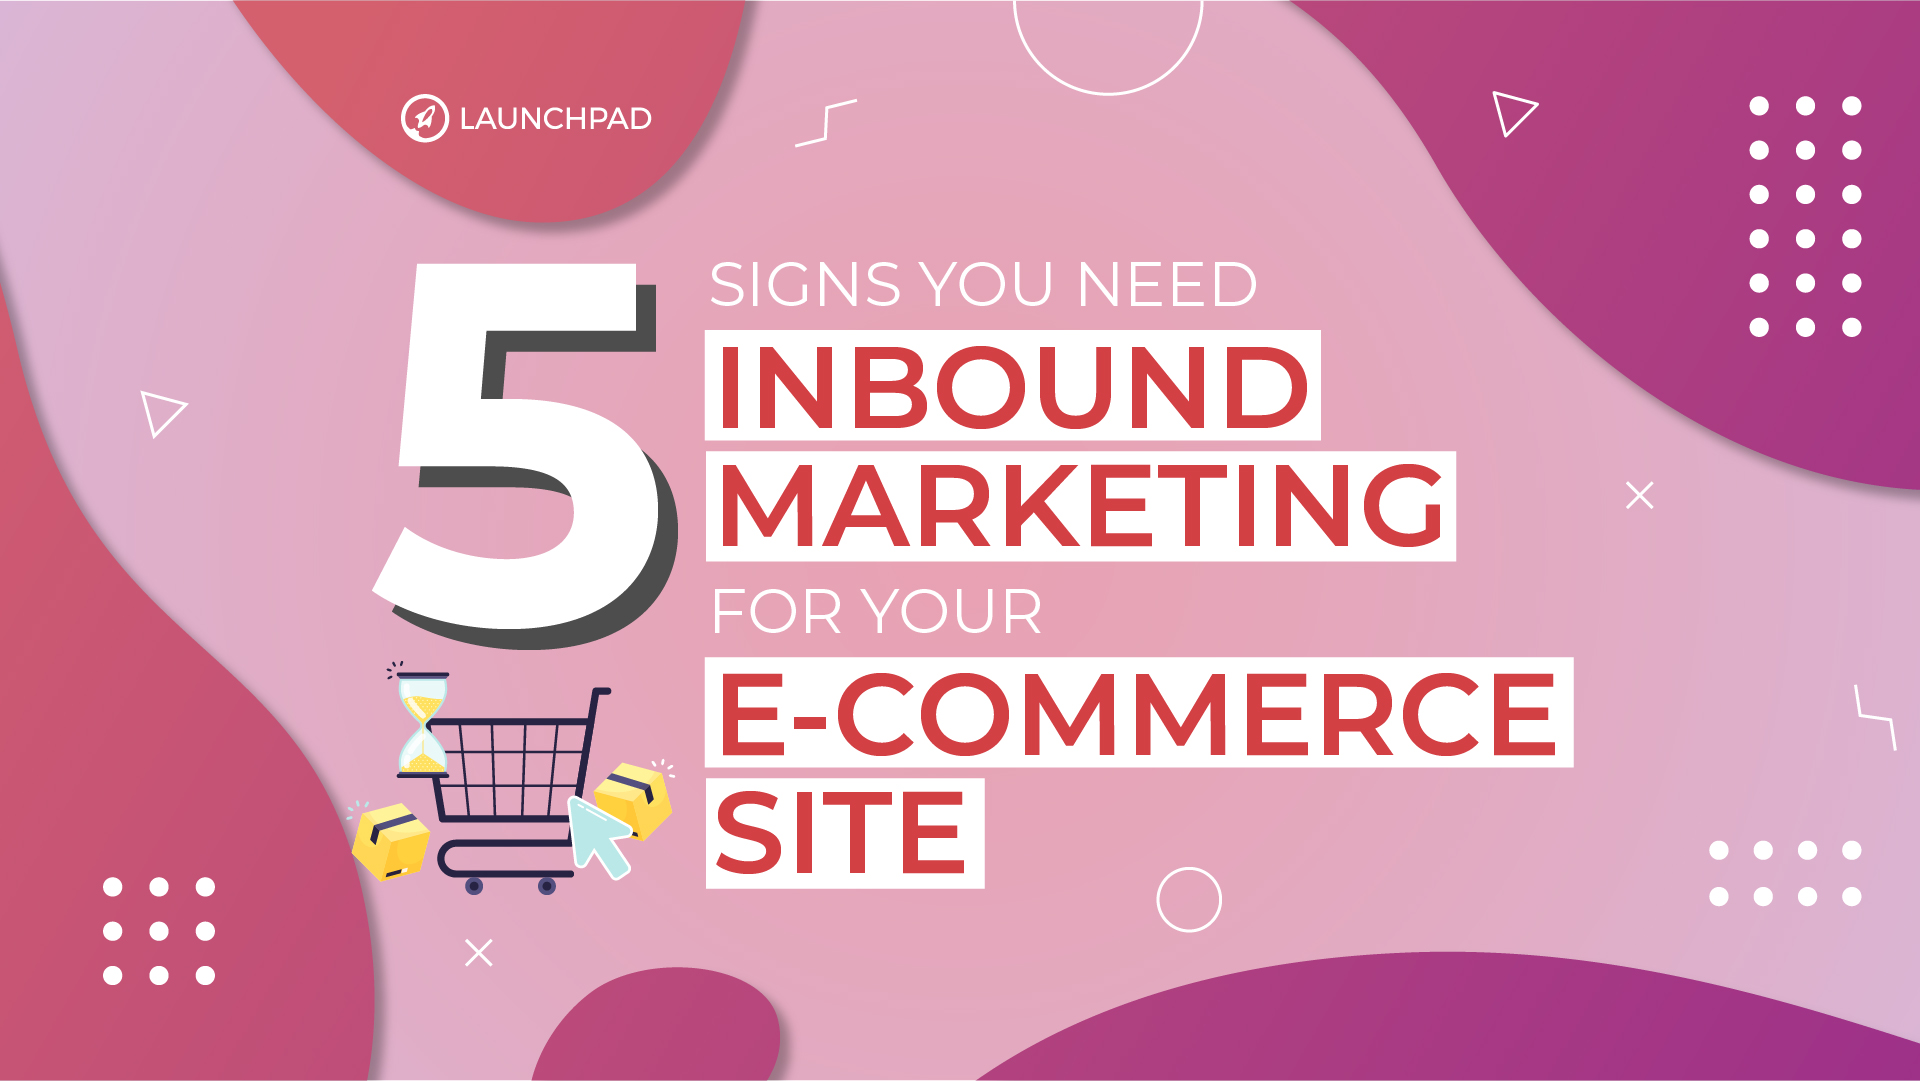 Blog[SM]-5 Signs You Need Inbound Marketing for Your e-Commerce Site-02